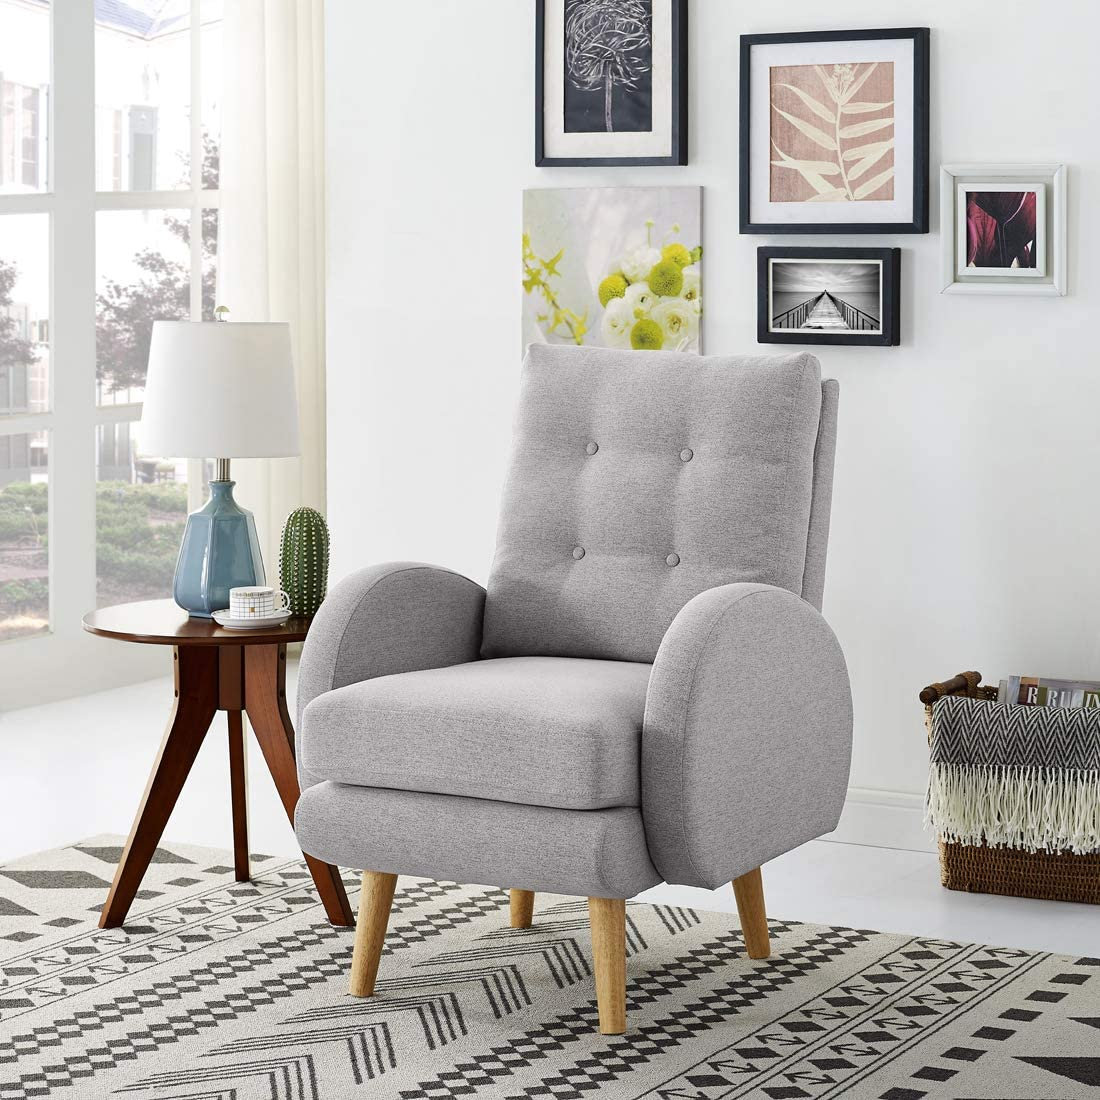 Lohoms Mid-Century Modern Accent Chair Tufted Button Fabric Uphlostered Curved Arm Chair Comfy High Back Chair Single Sofa Light Grey